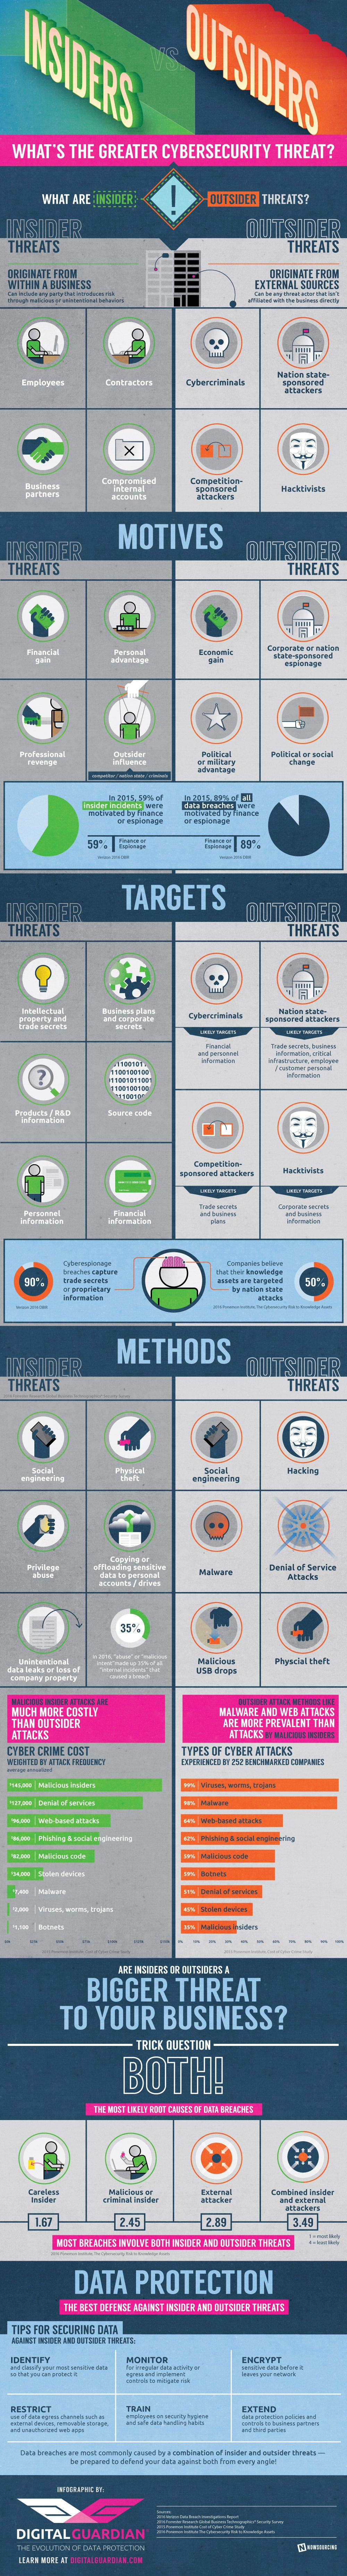 Insider vs. Outsider Threats #Infographic